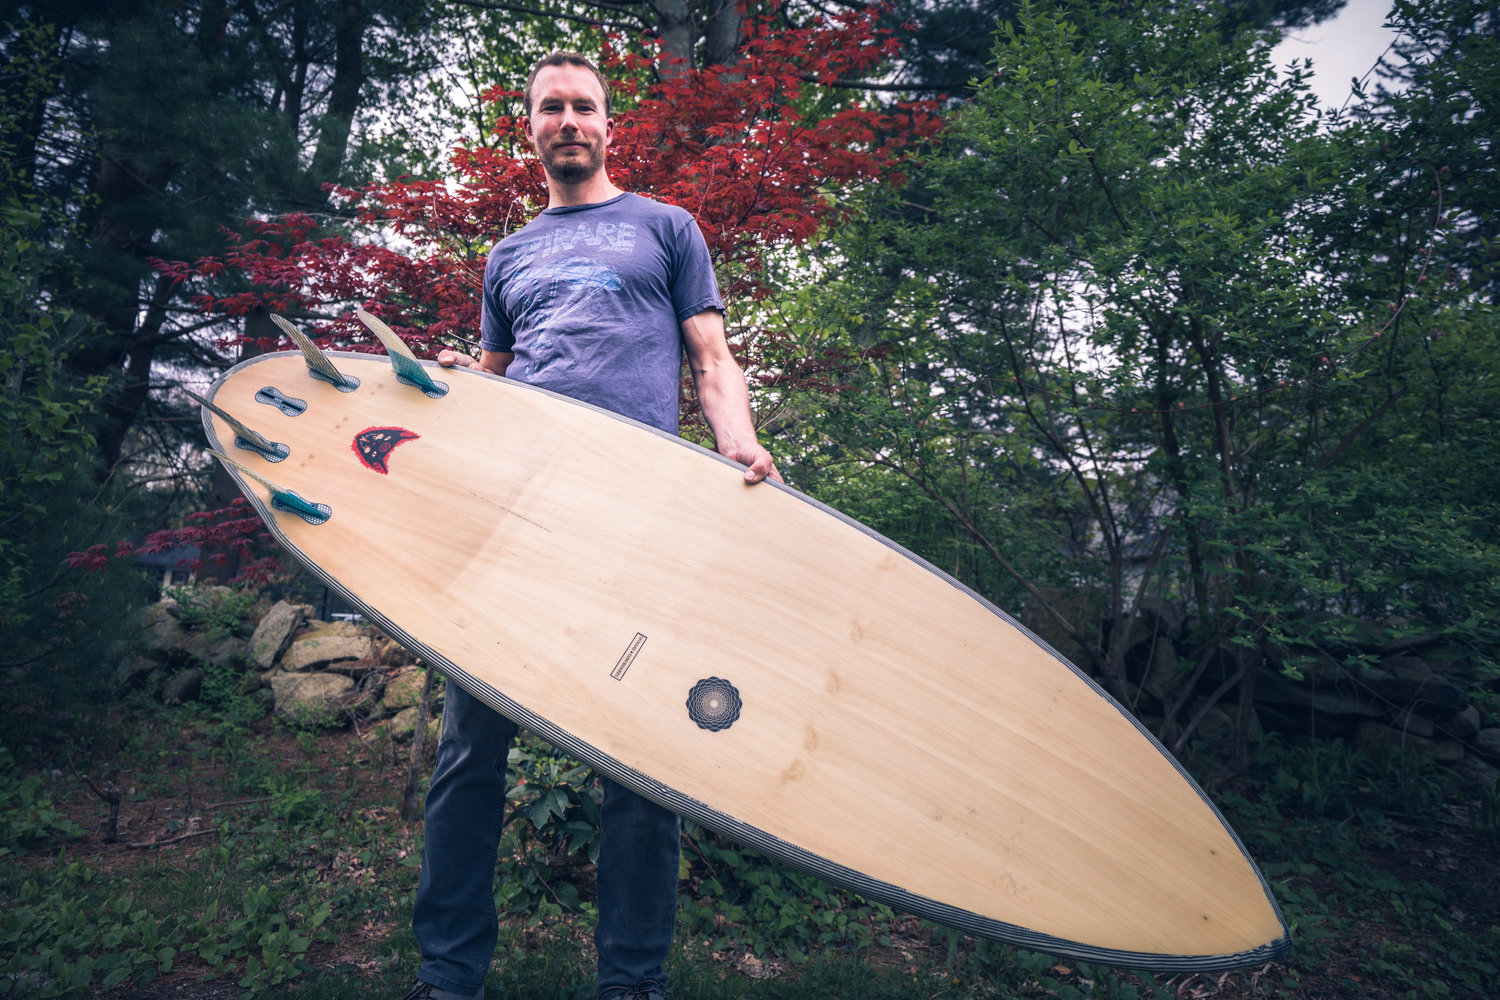 Kevin Cunningham, of Spirare Surfboards